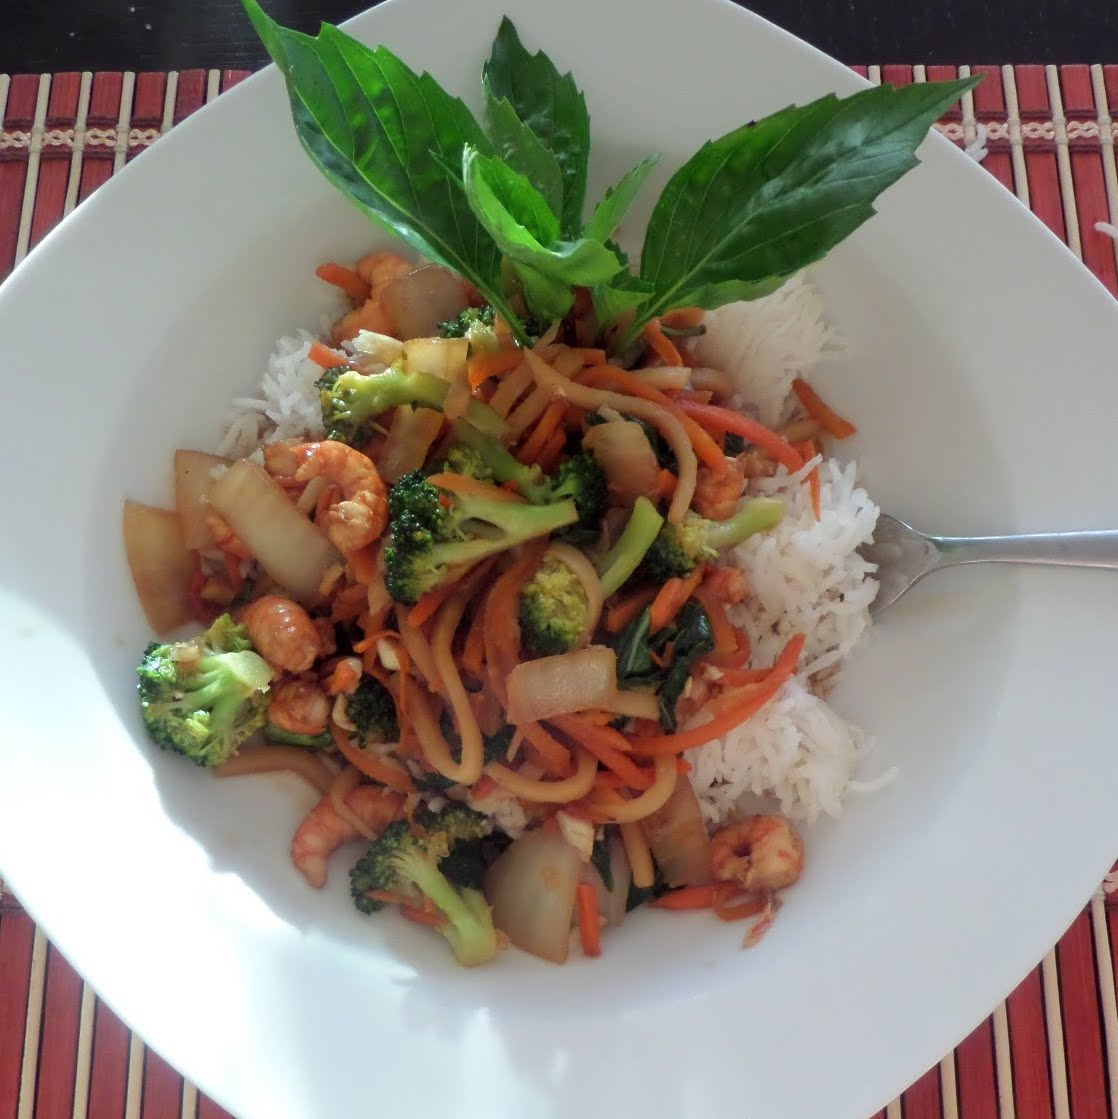 Garlic Shrimp Stir Fry:  a healthy stir fry made with shrimp, vegetables, and lots of garlic.